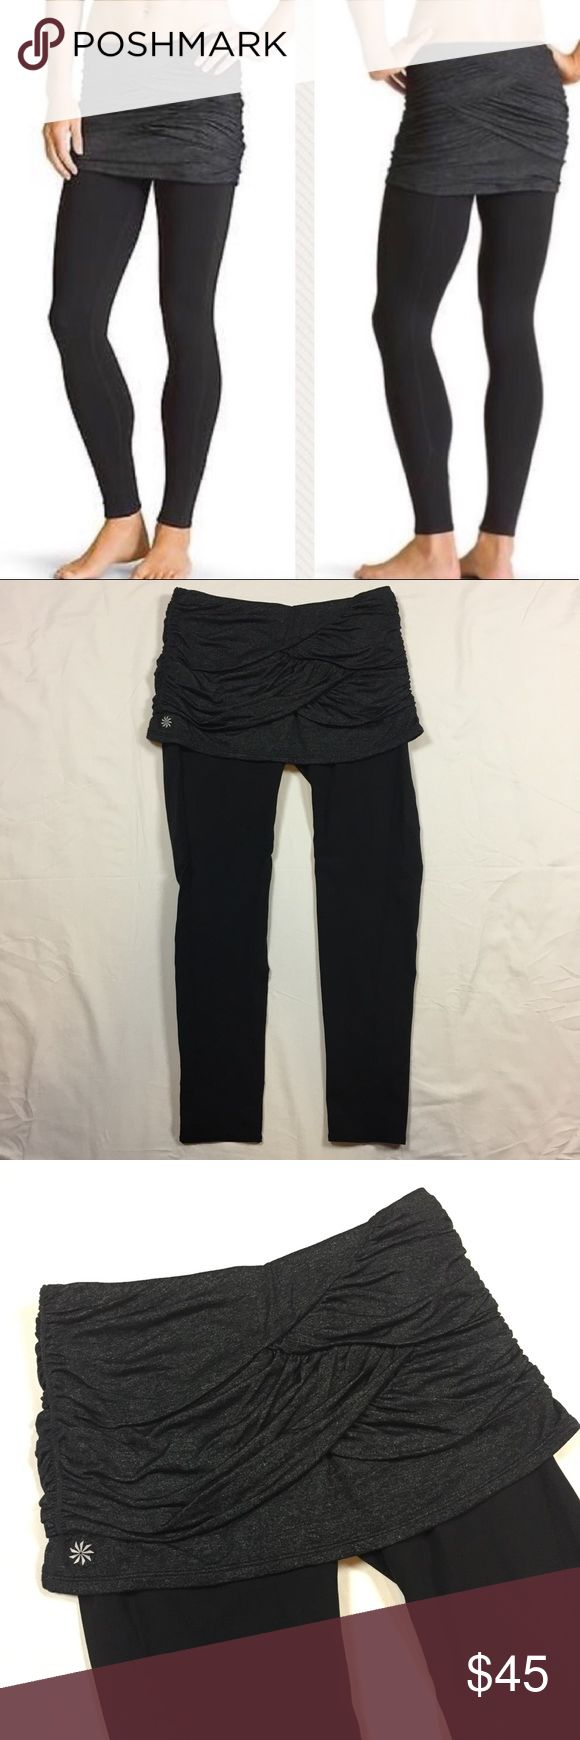 """Athlete Yin Yang Skirted Athletic Pants Stretchy black yoga pants with stretchy, tiered rouched, Pleated gray skirt. Nylon, polyester, spandex blend.  Perfect condition. Style number 930142 Drawstring at waist for secure fit.  One small pocket on butt under the skirt for keys. 3 inches wide, 3.5 inches deep.  26 inch inseam. 11 inch long skirt. Exercise leggings.  Ask any questions about condition or more pictures before you buy. Make an offer using the """"offer"""" button. 15% discount on…"""